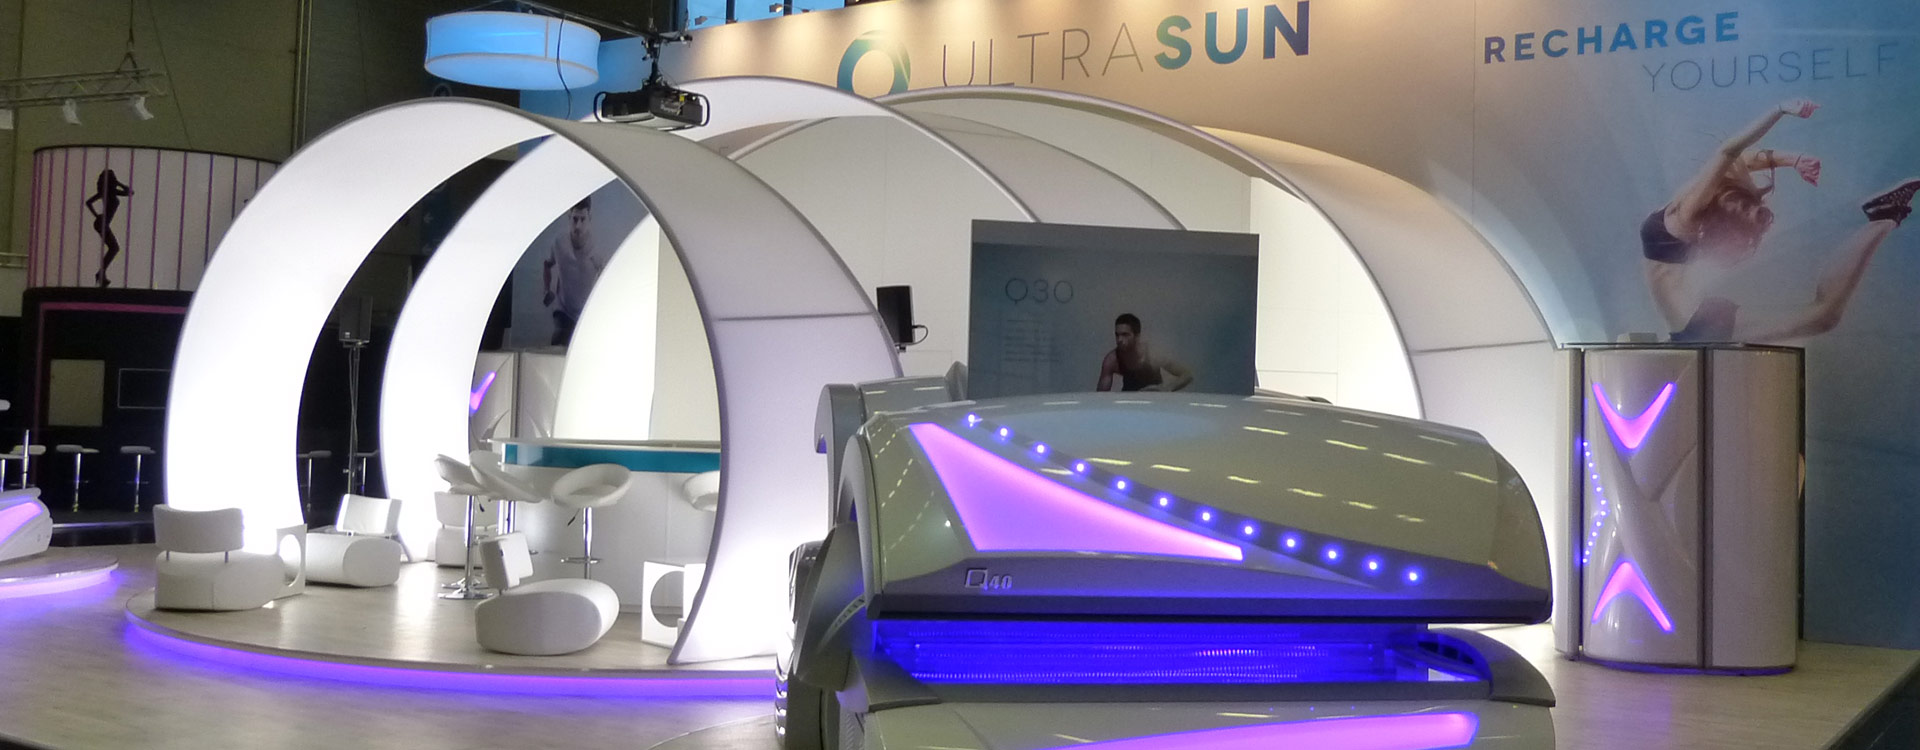 Ultrasun, FIBO 2014, Cologne